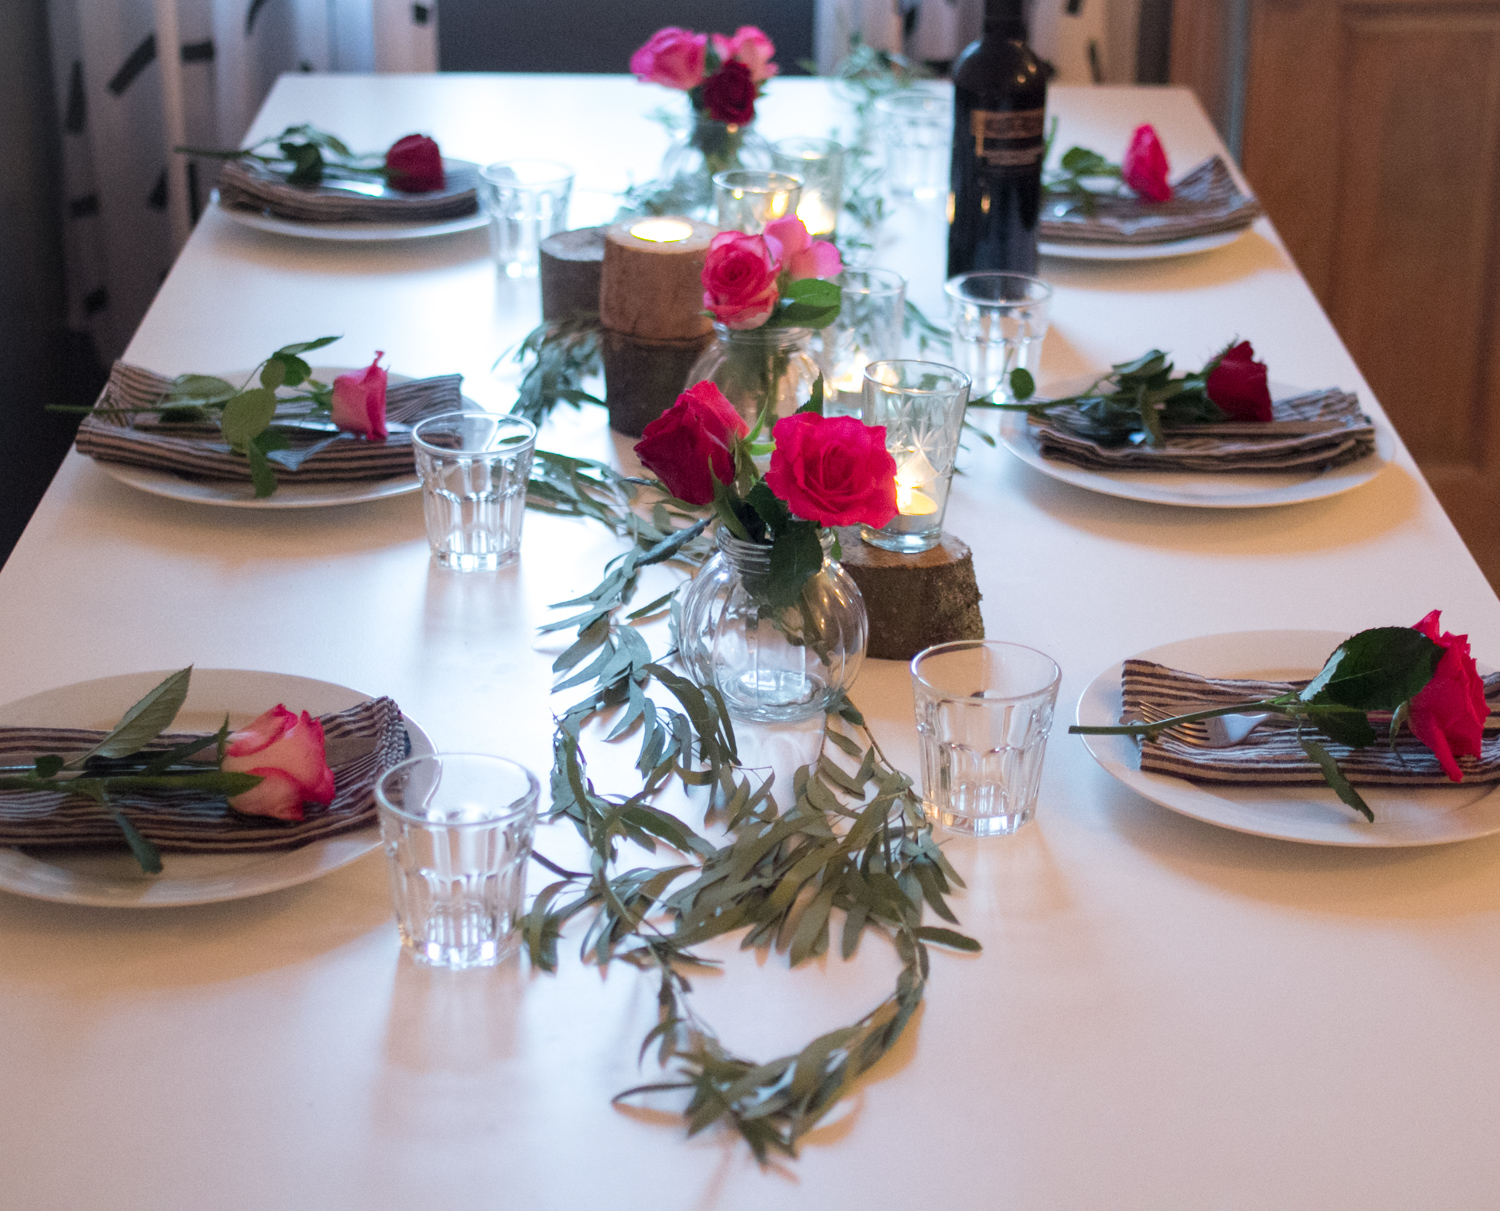 Fairtrade Roses from Marks and Spencers, simple white crockery and stripy linens from Linen Me.